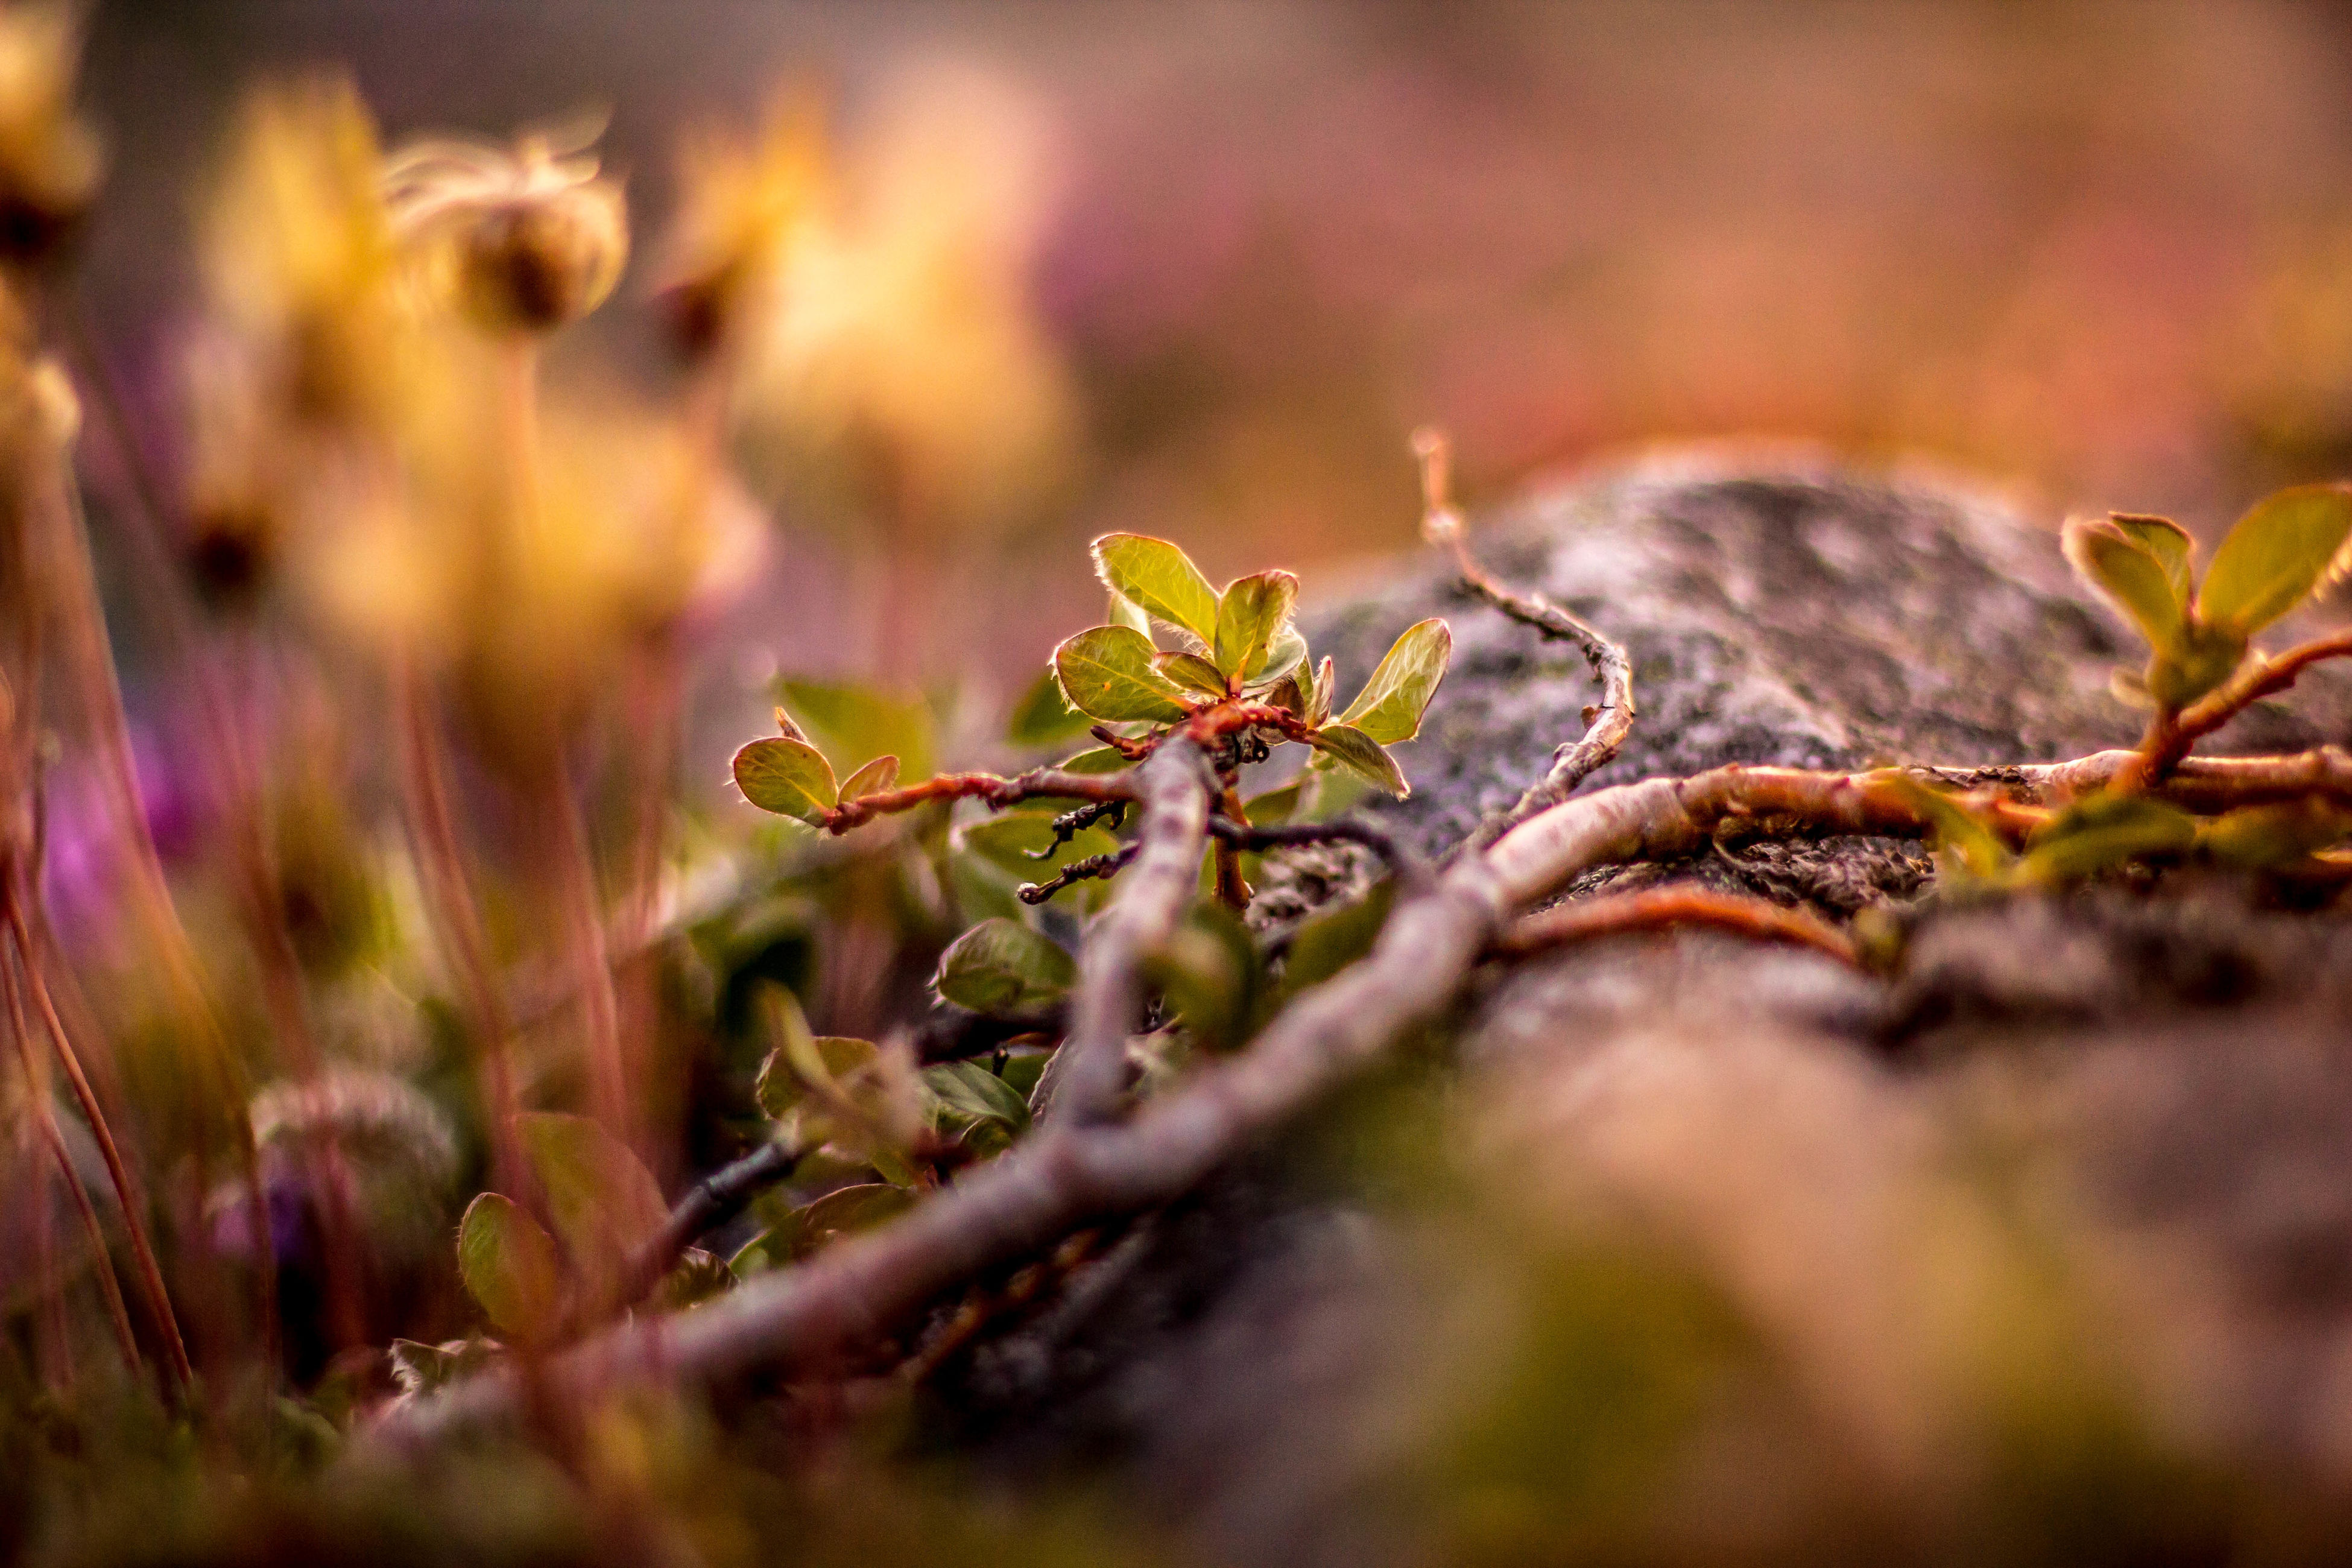 close-up, nature, plant, leaf, beauty in nature, growth, no people, outdoors, fragility, day, freshness